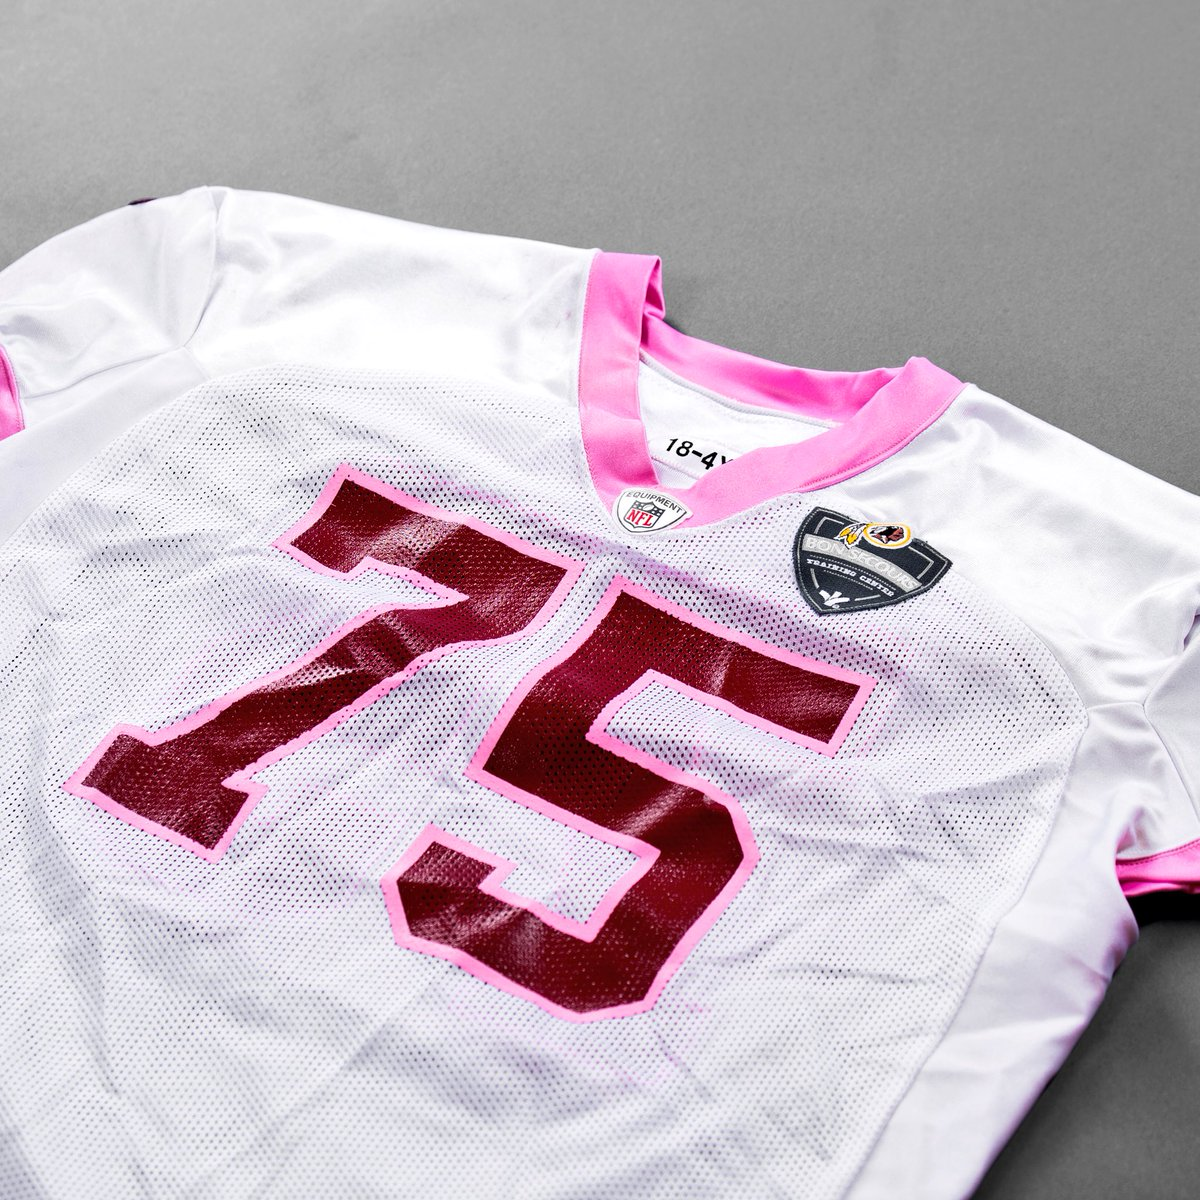 ...  ThinkPink 20th Anniversary Auction! 🎀 Head over to  https   t.co uQYyAayvBU to place bids on items like this Practice-Worn Pink  Jersey autographed ... 86ad76c53